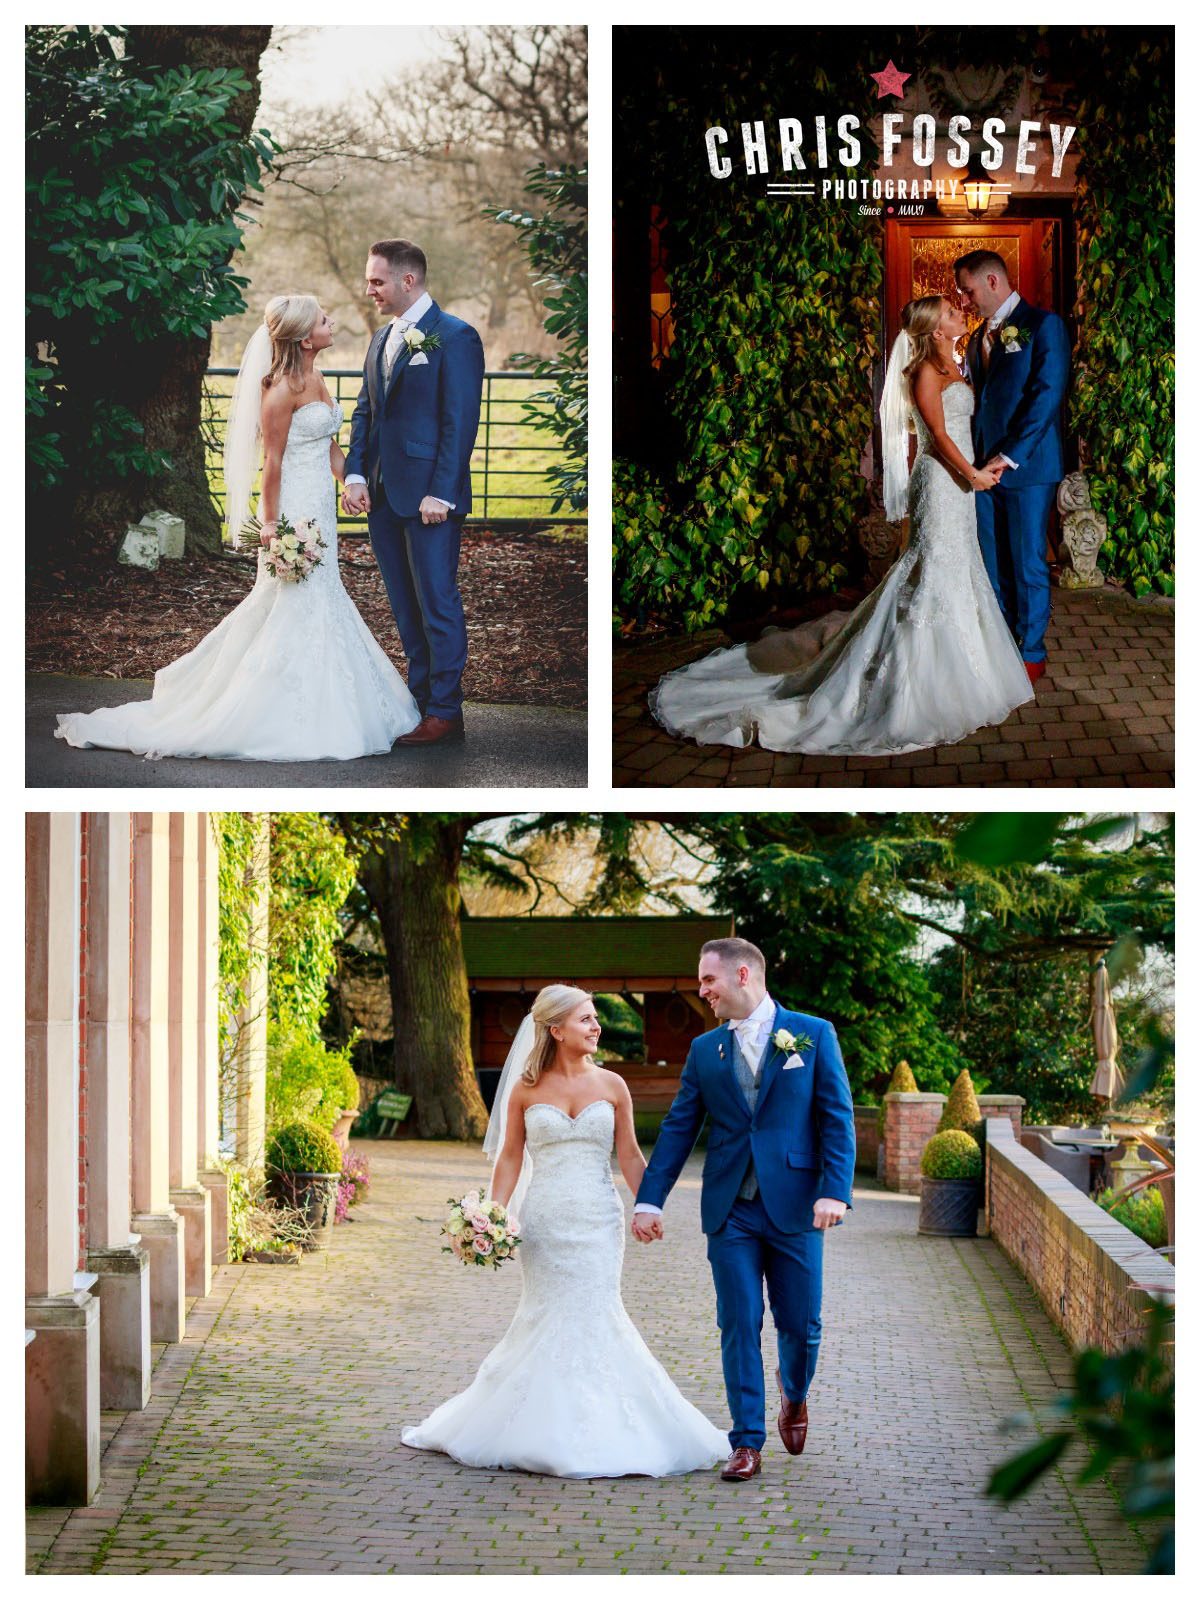 Erica Ross Nuthurst Grange Hotel Gorgeous Natural Wedding Photography Warwickshire Chris Fossey B94 5NL